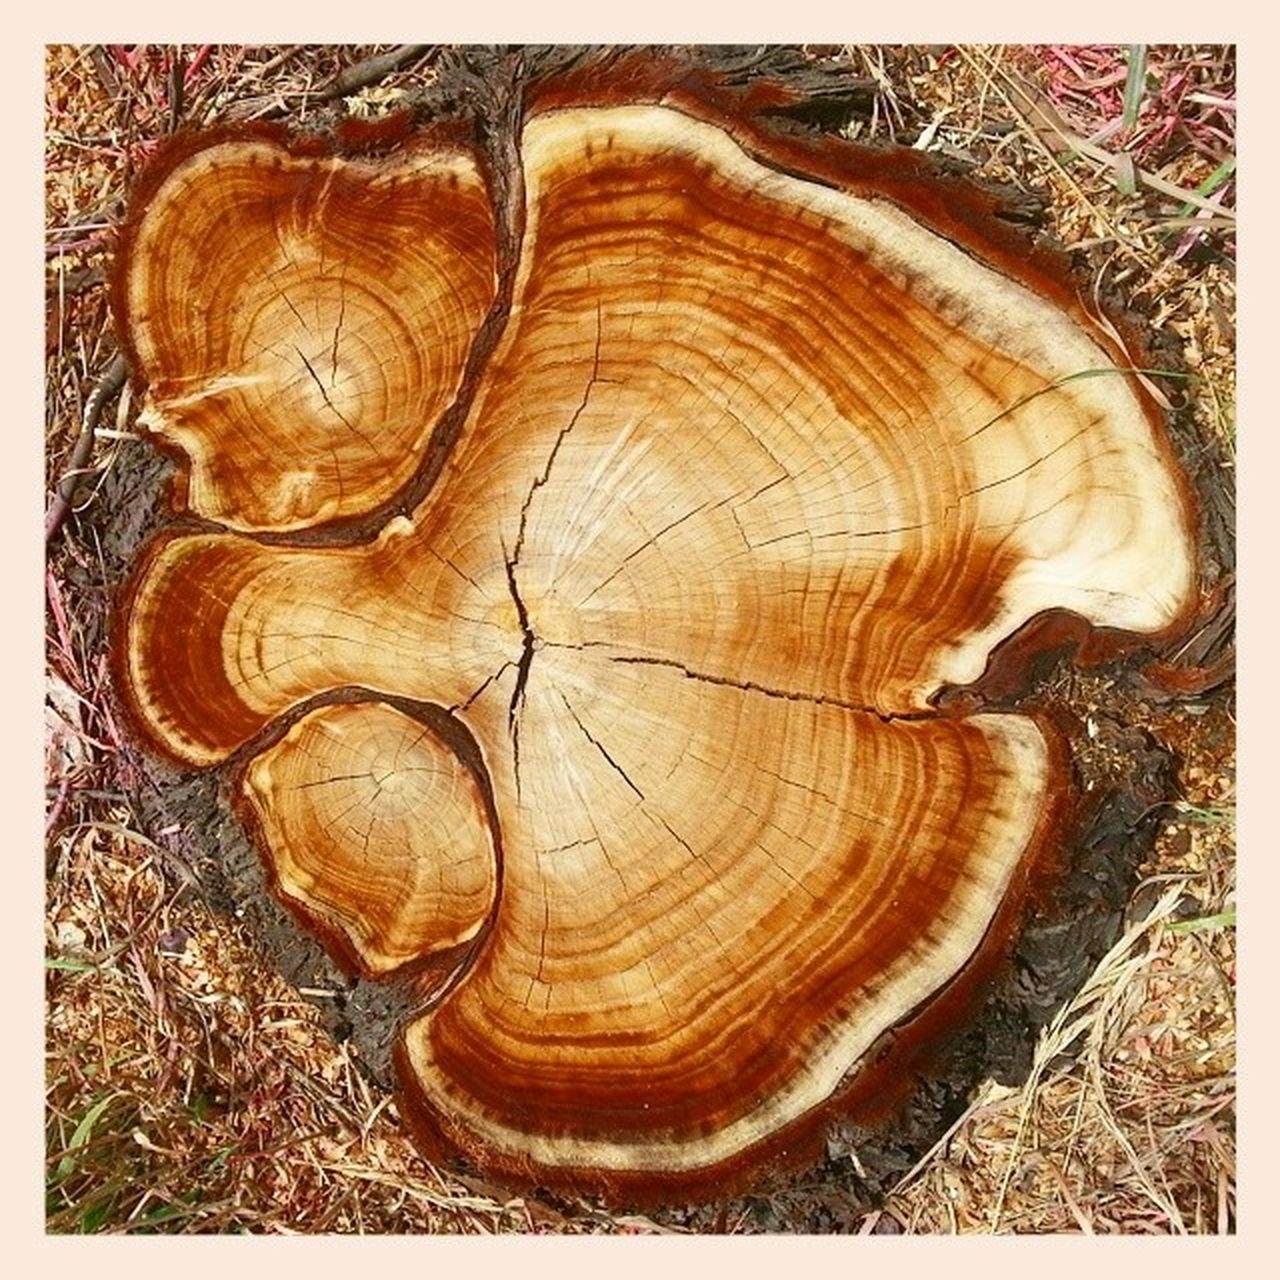 Rings of Life Tree Treestump Eastlake TreeRings